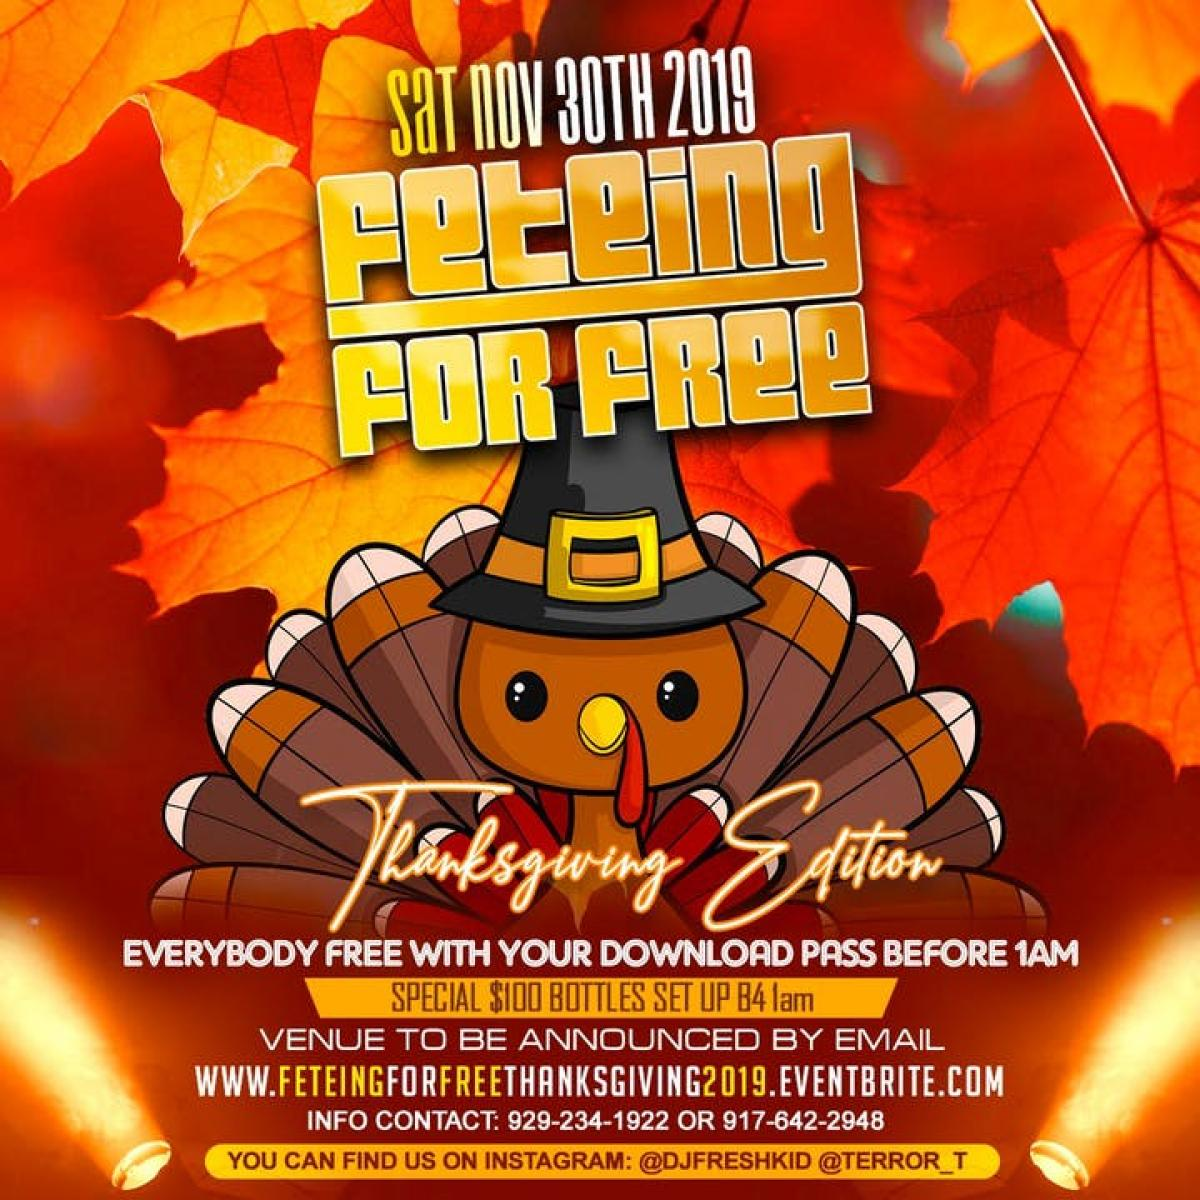 Feteing For Free Thanksgiving 2019 flyer or graphic.